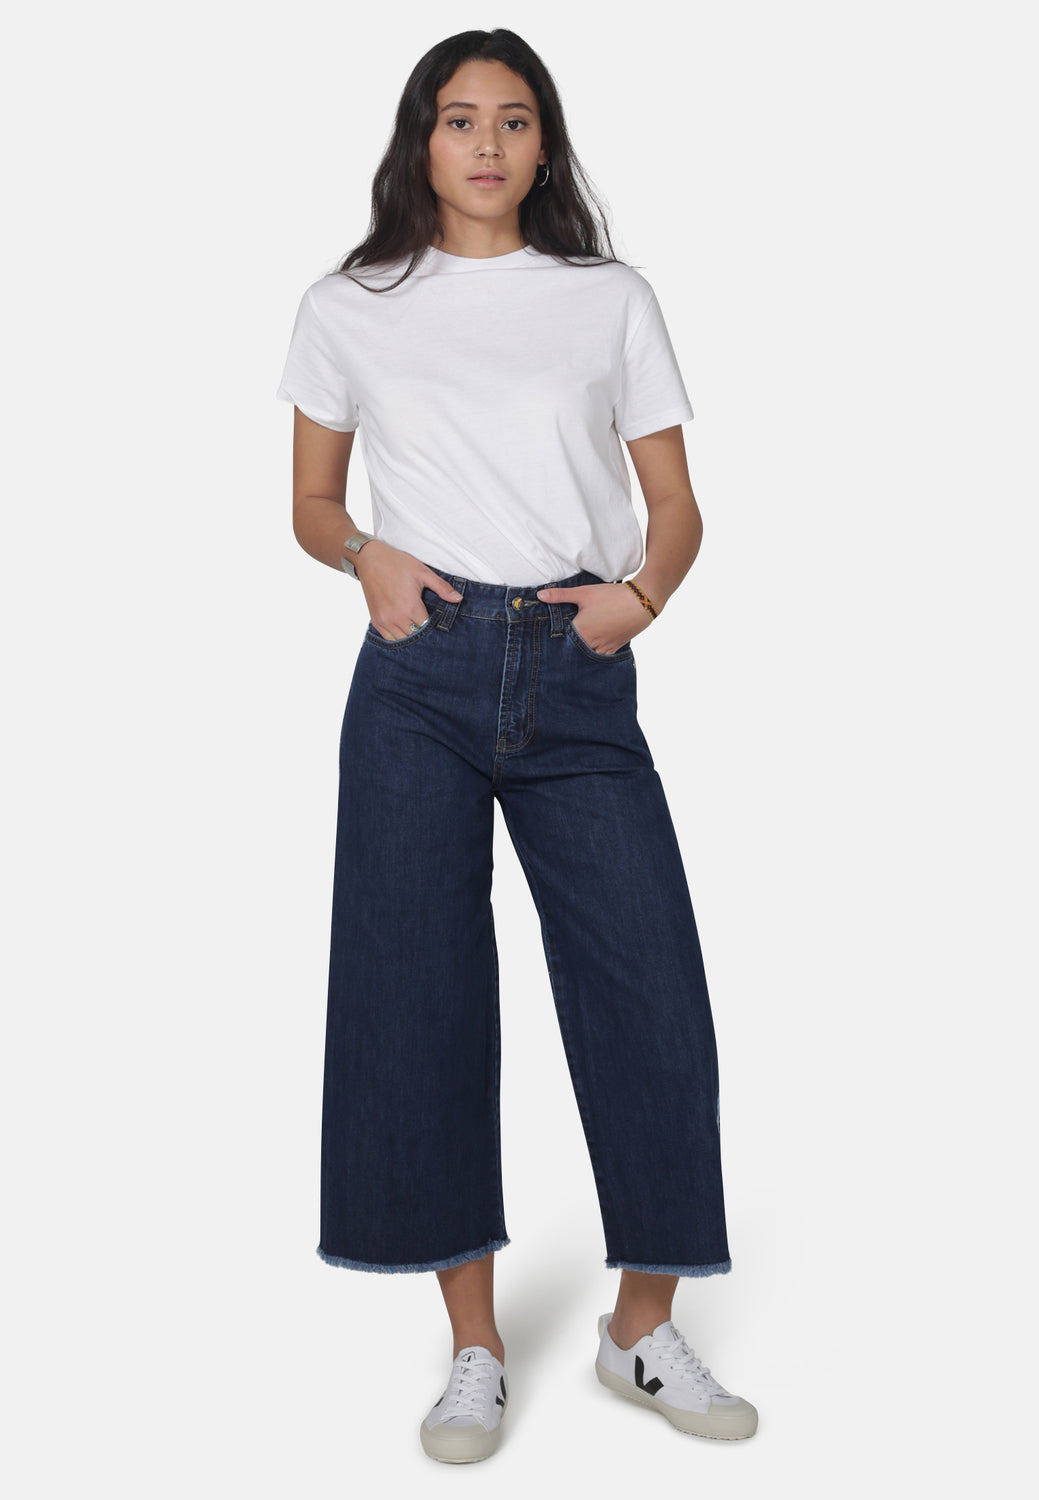 WIDE LEG // Organic Cropped Wide Leg Jeans in Dark Wash with Tape - Monkee Genes Organic Jeans Denim - Women's Cropped Monkee Genes Official  Monkee Genes Official